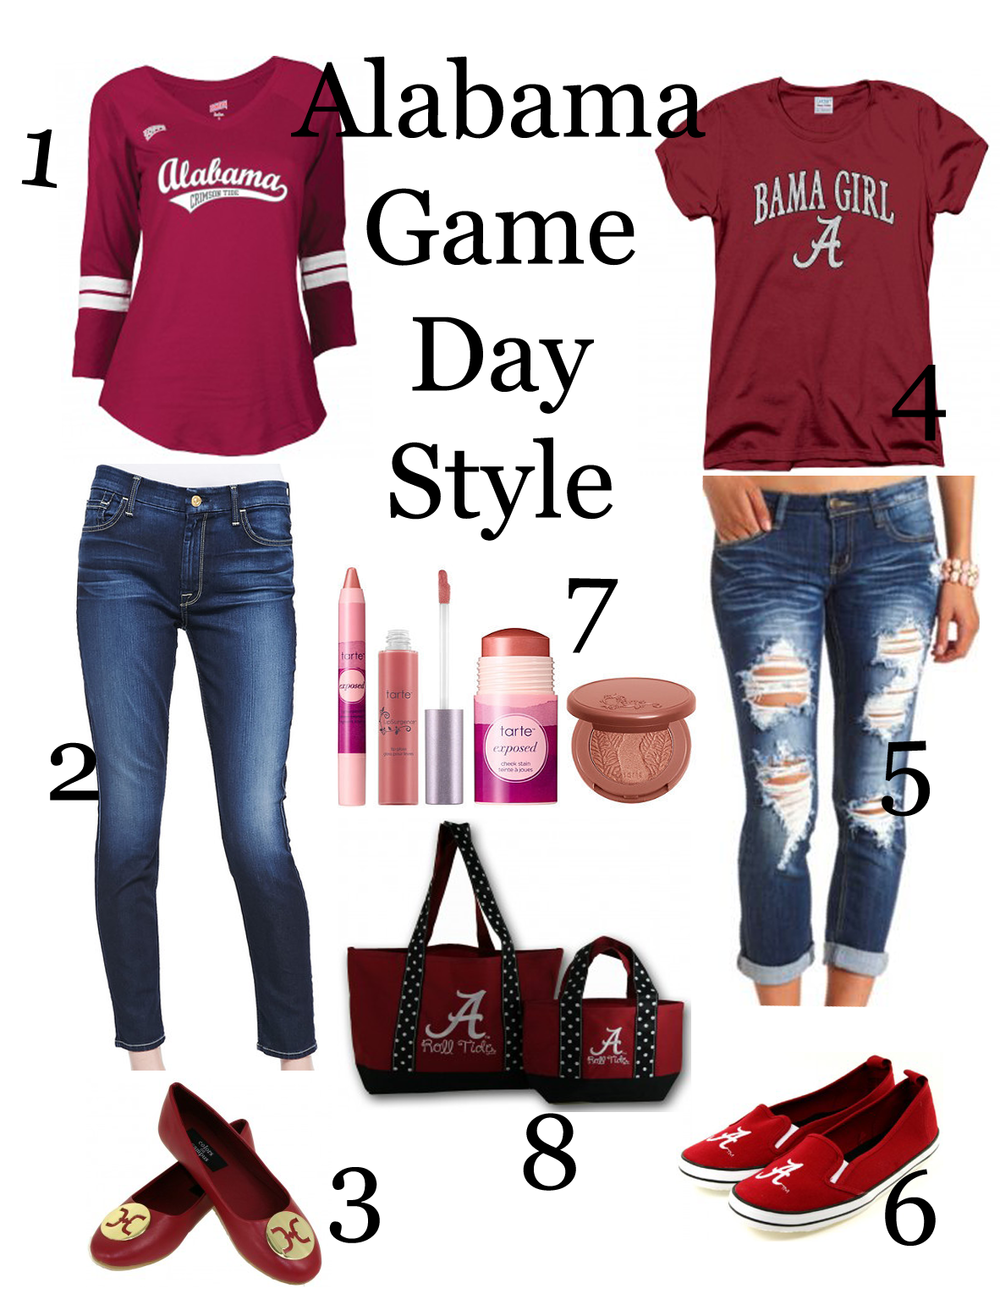 Alabama Game Day Style Ensemble